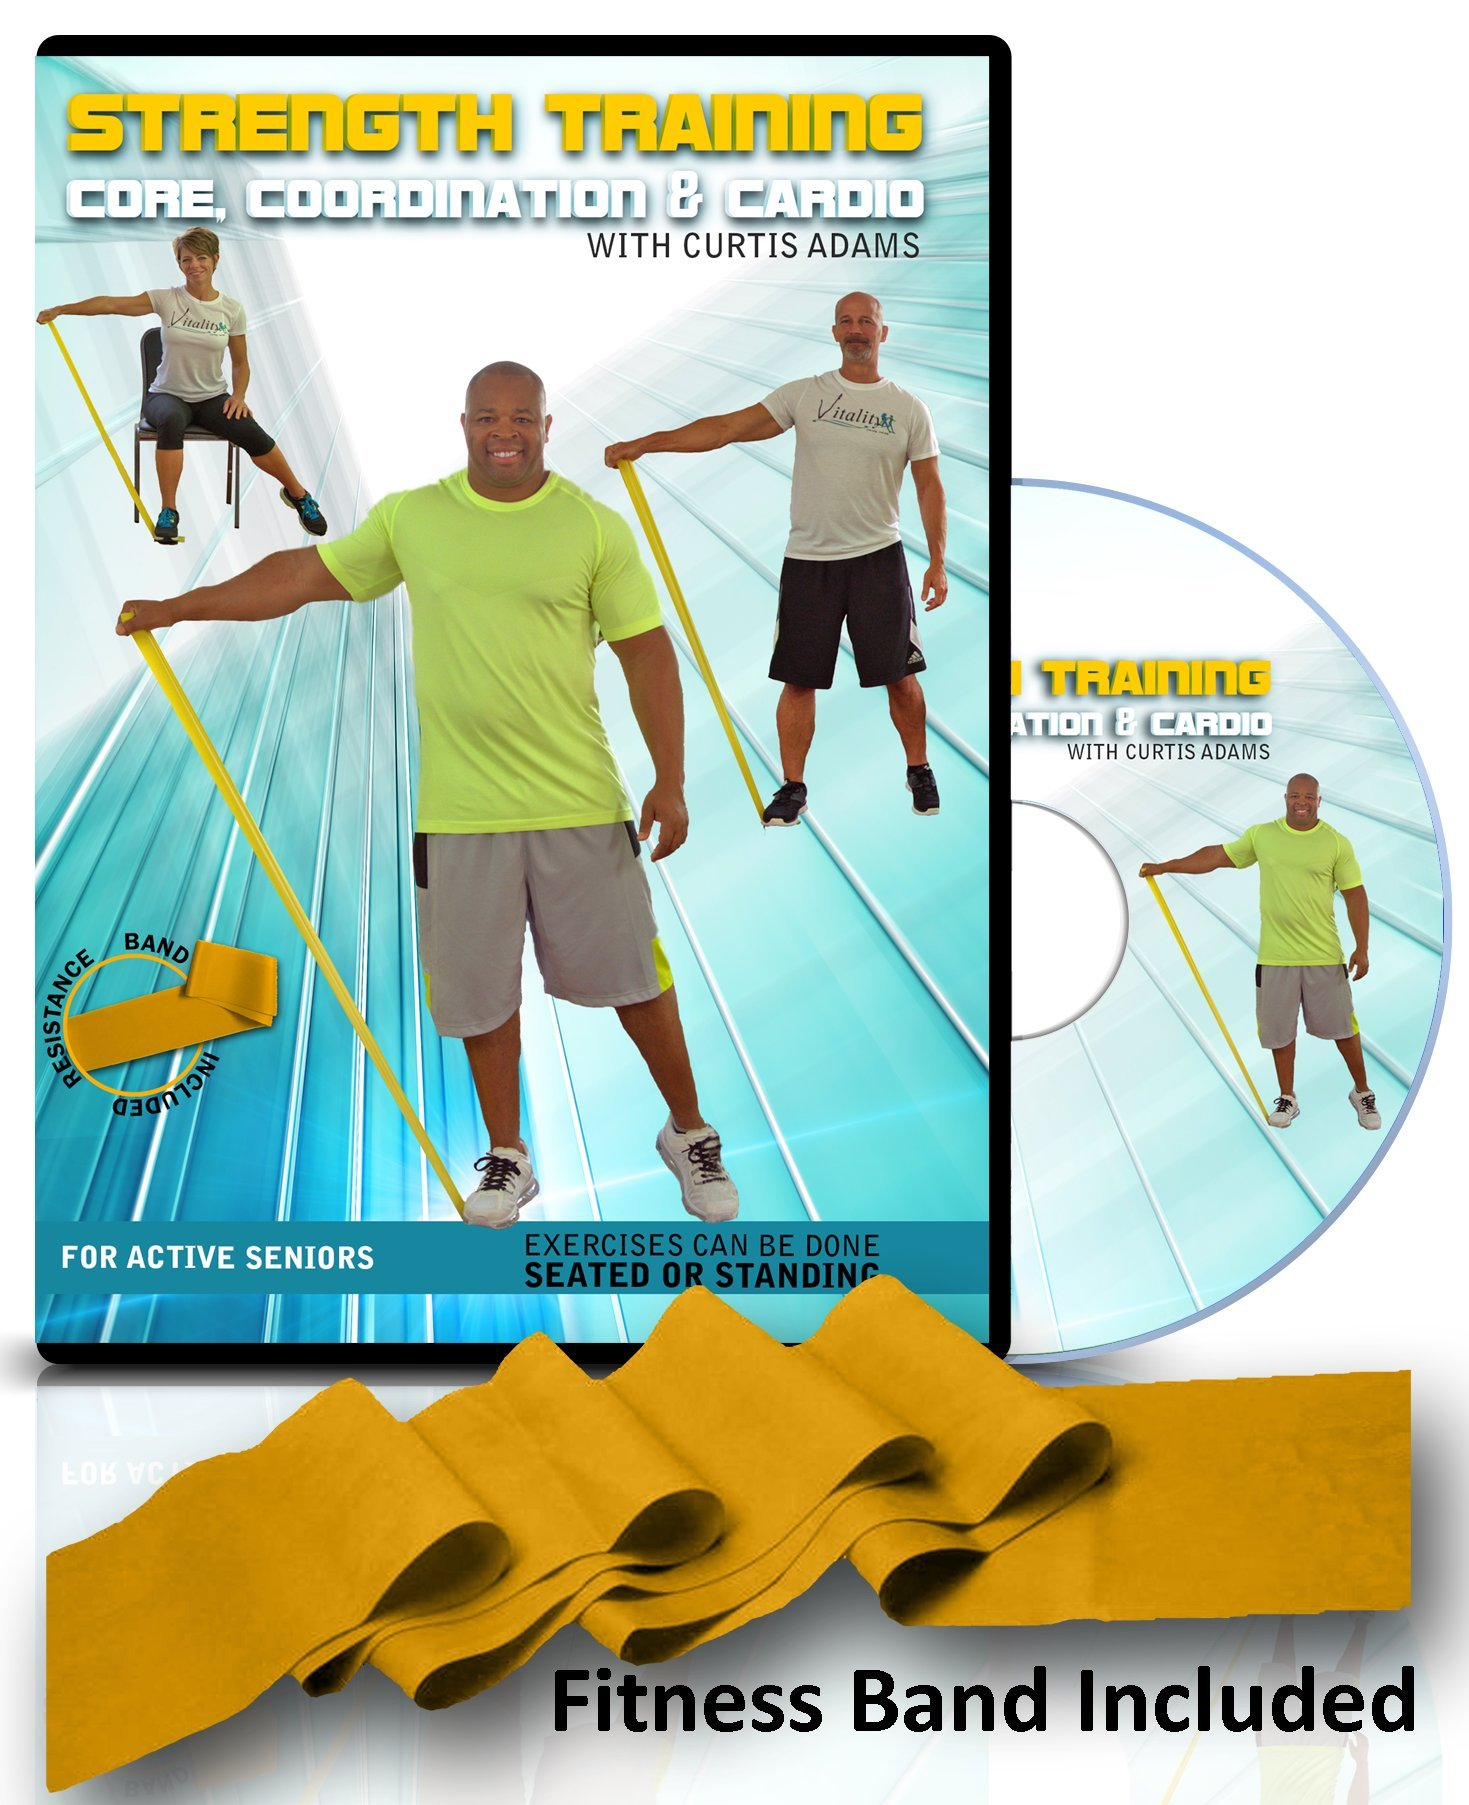 Exercise for seniors: SENIOR EXERCISE DVD + RESISTANCE BAND. Select standing or chair exercise you decide. Senior workout video helps you get stronger, core & abs, aerobic heart health, coordination